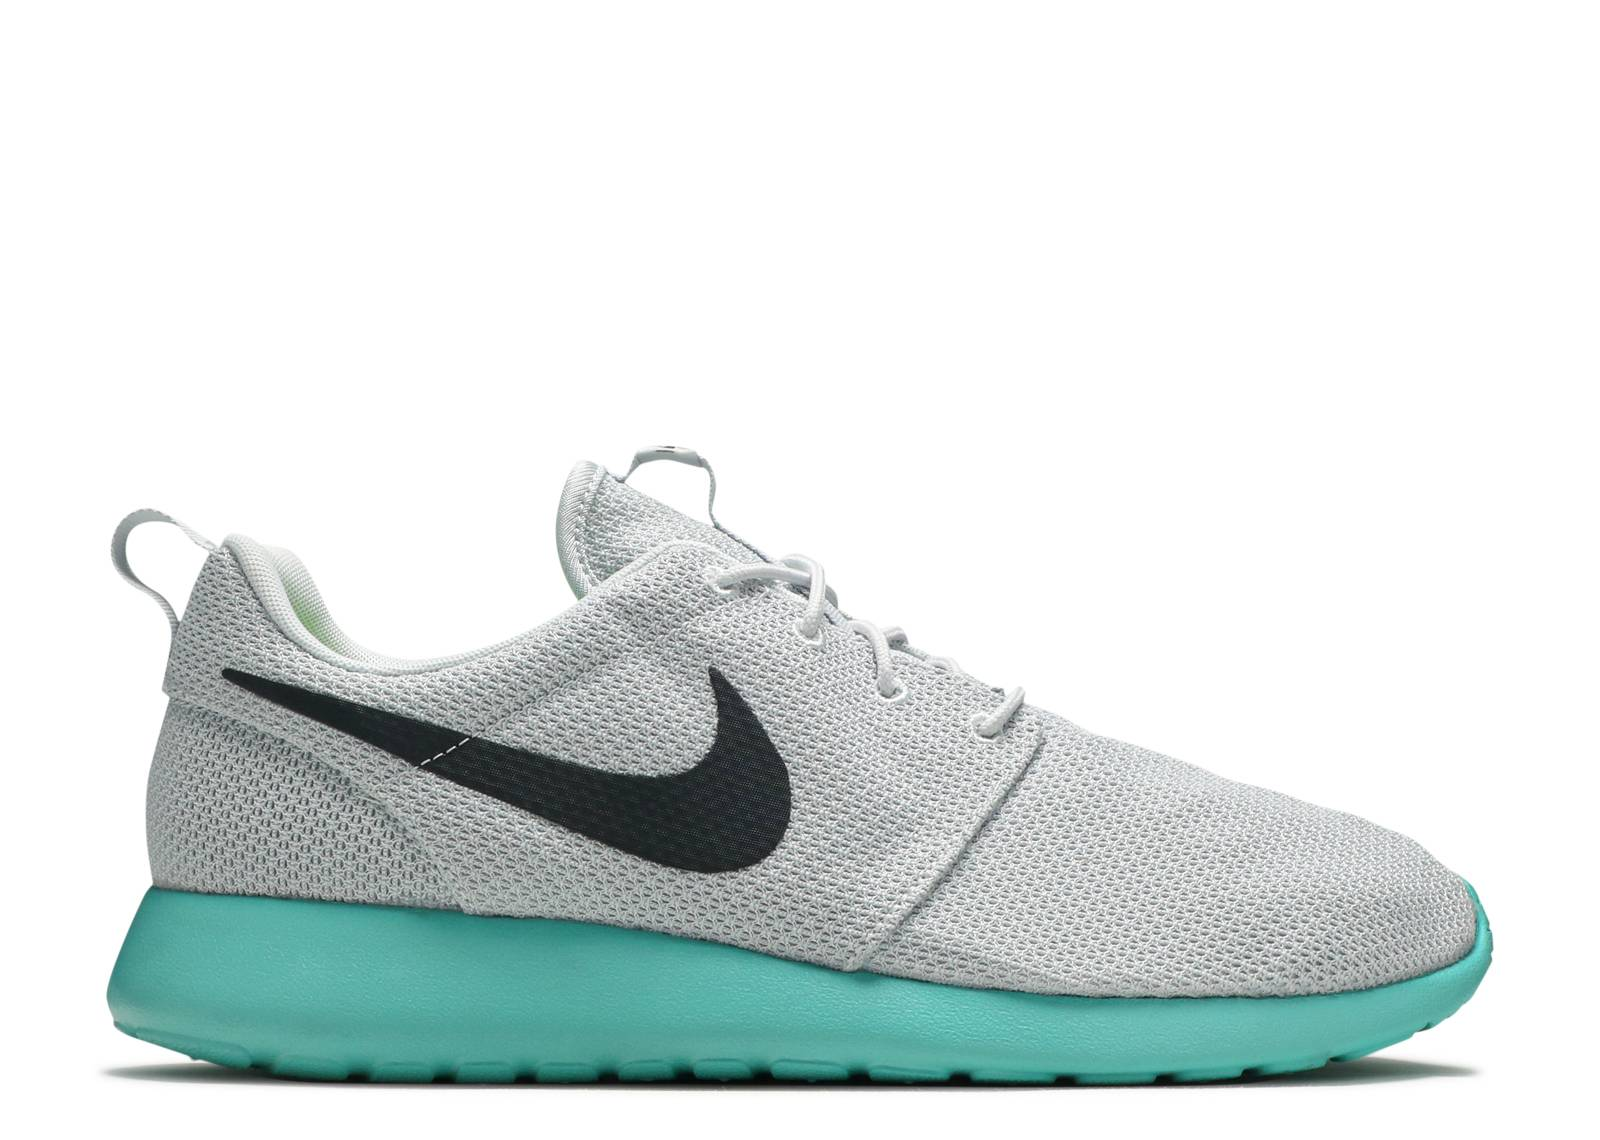 roshe run calypso nike 511881 013 pure platinum. Black Bedroom Furniture Sets. Home Design Ideas